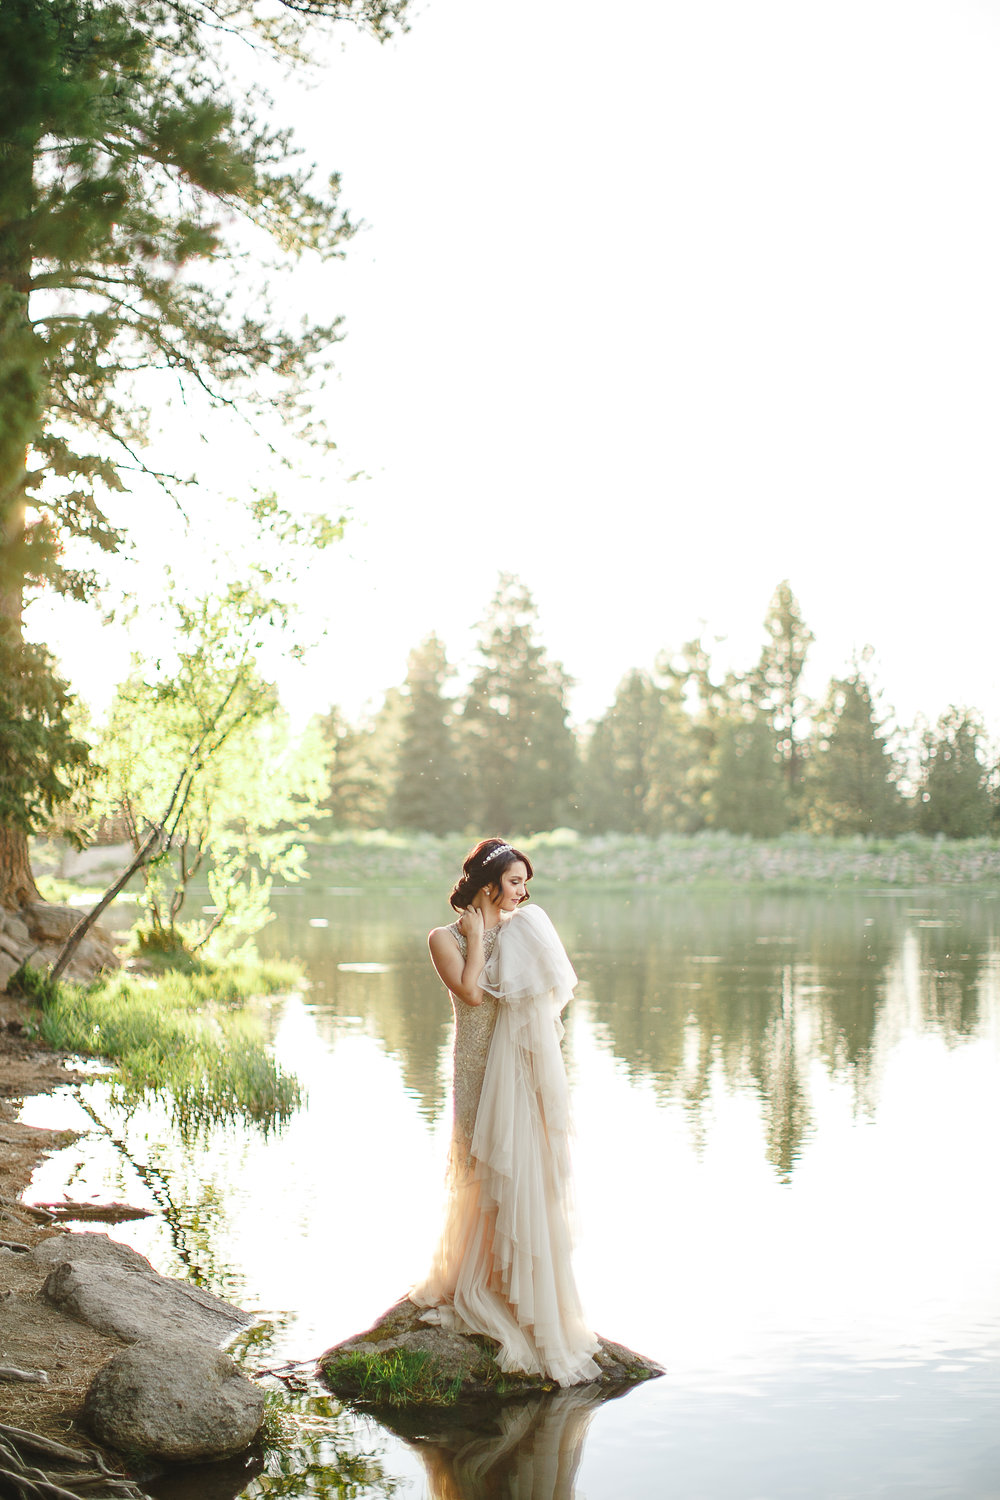 Check out this reflecting REAL bridal shoot, featured on Utah Valley Bride Blog. You can find it HERE!!